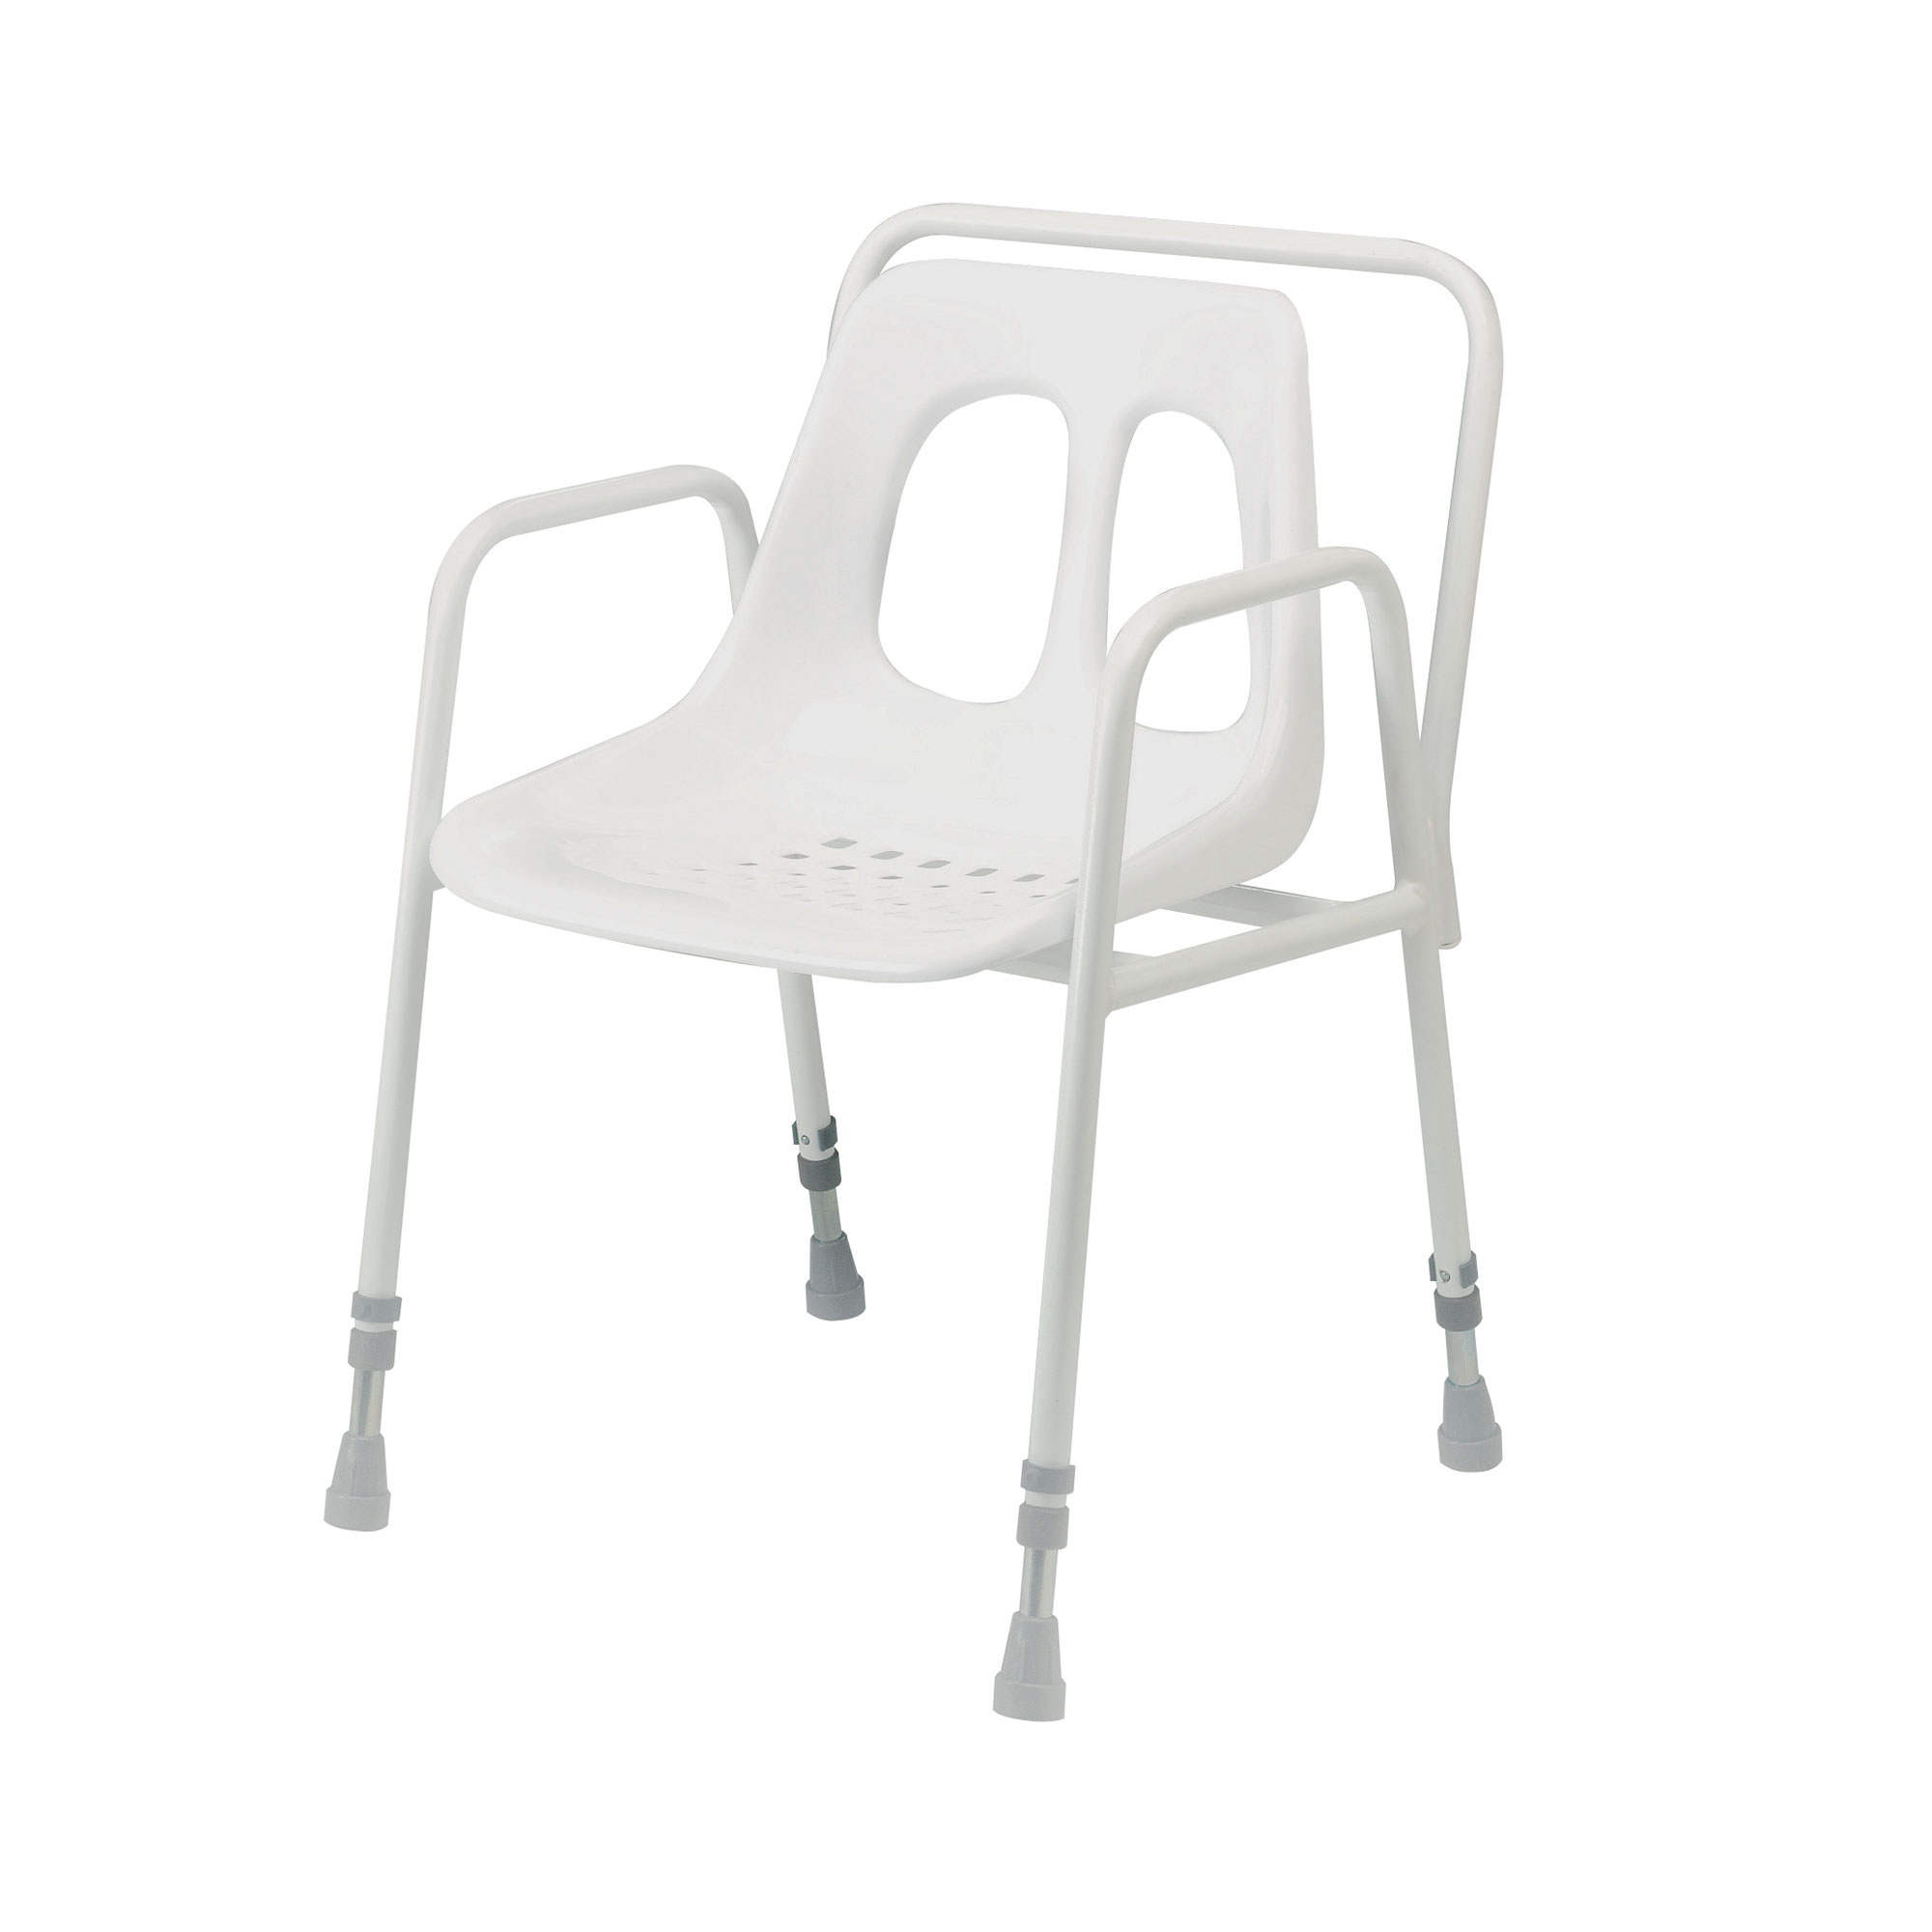 seat shower front blue inc open chair background wide products care